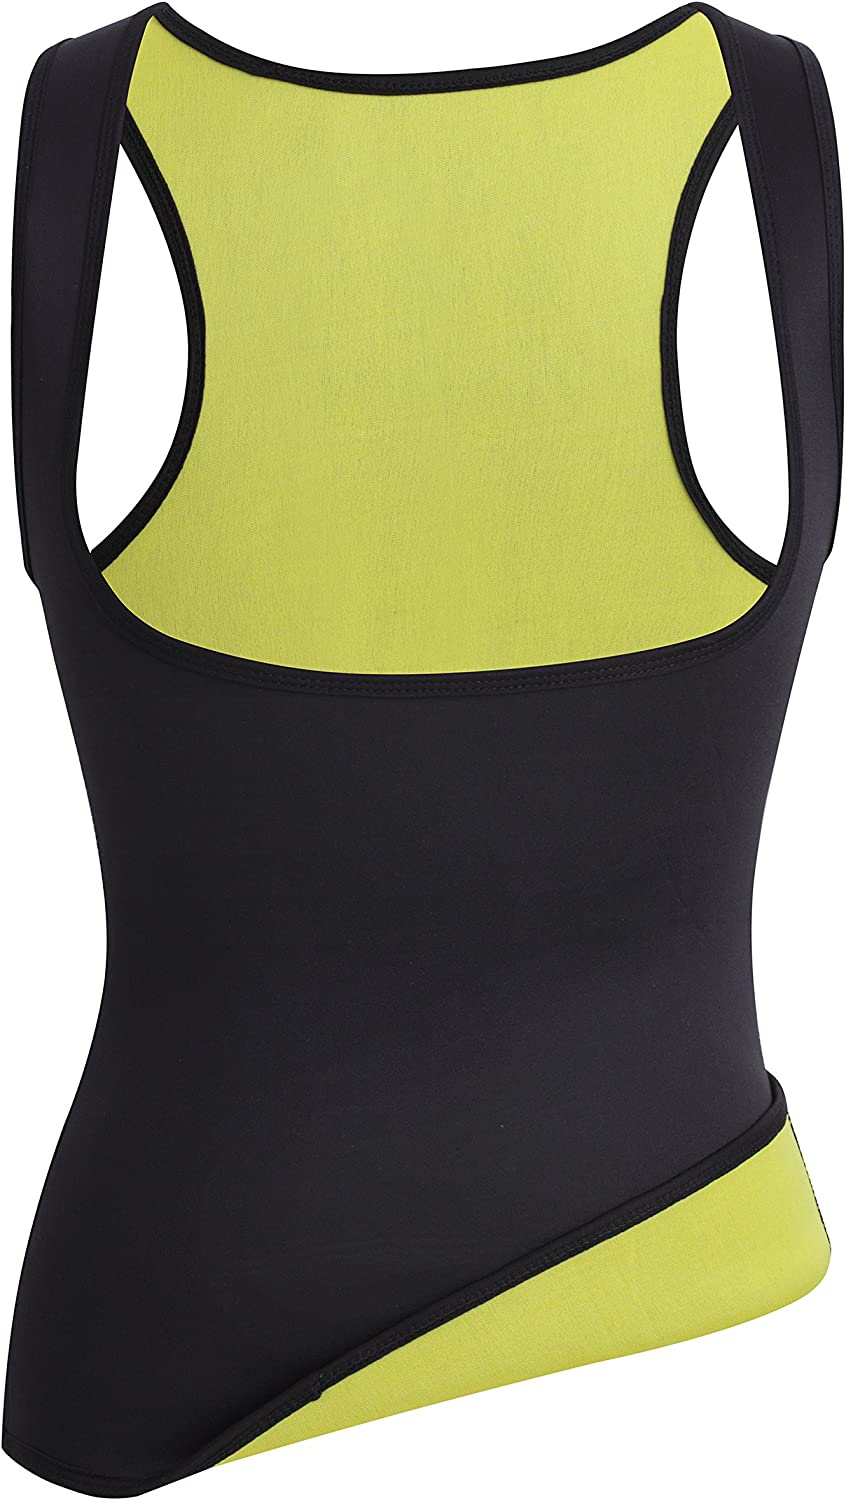 Thermo Sports Waist Shaper Promotes Sweating Plus Size Comfort Sweat Vest